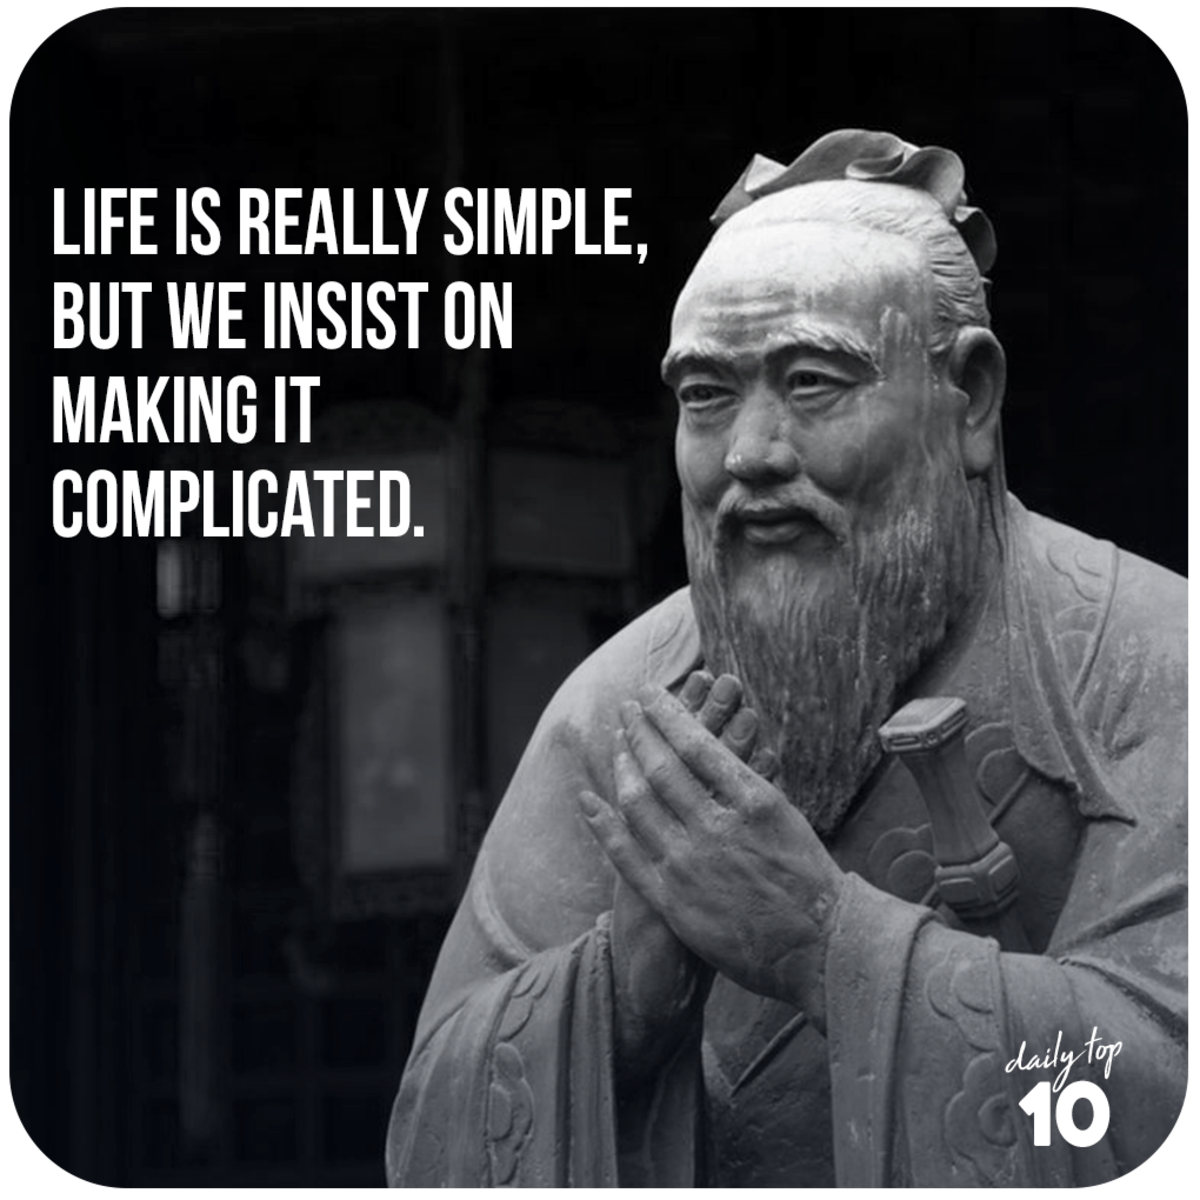 Confucius quote about life